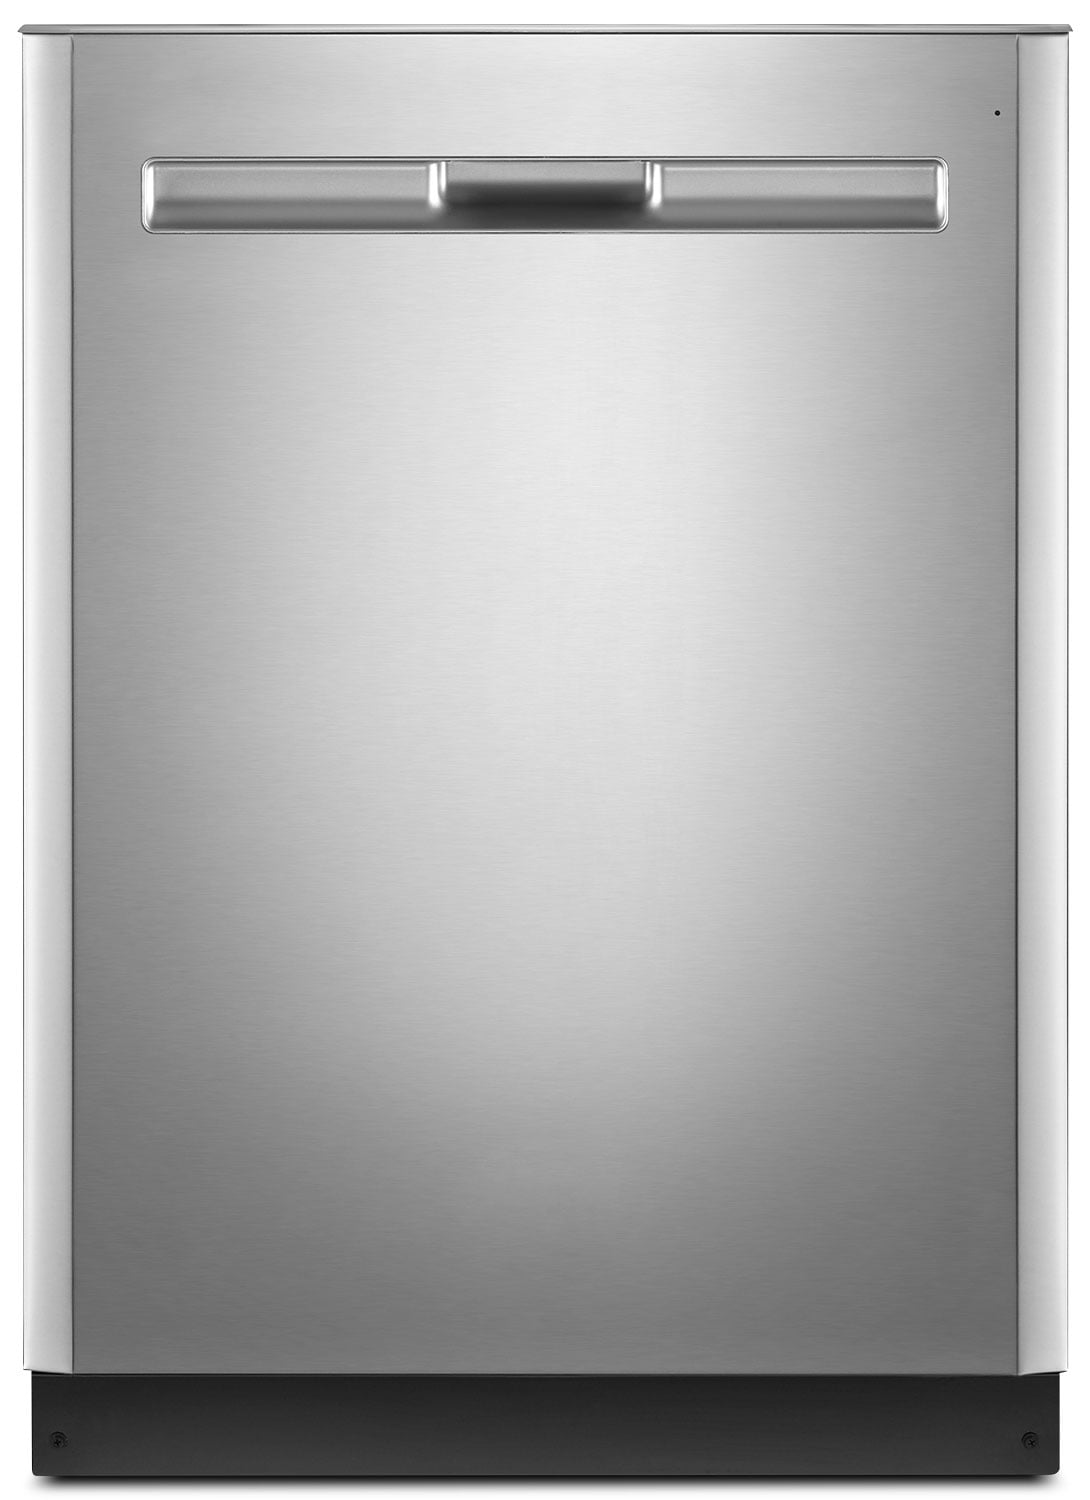 Maytag Built-In Top-Control Dishwasher – MDB8959SFZ